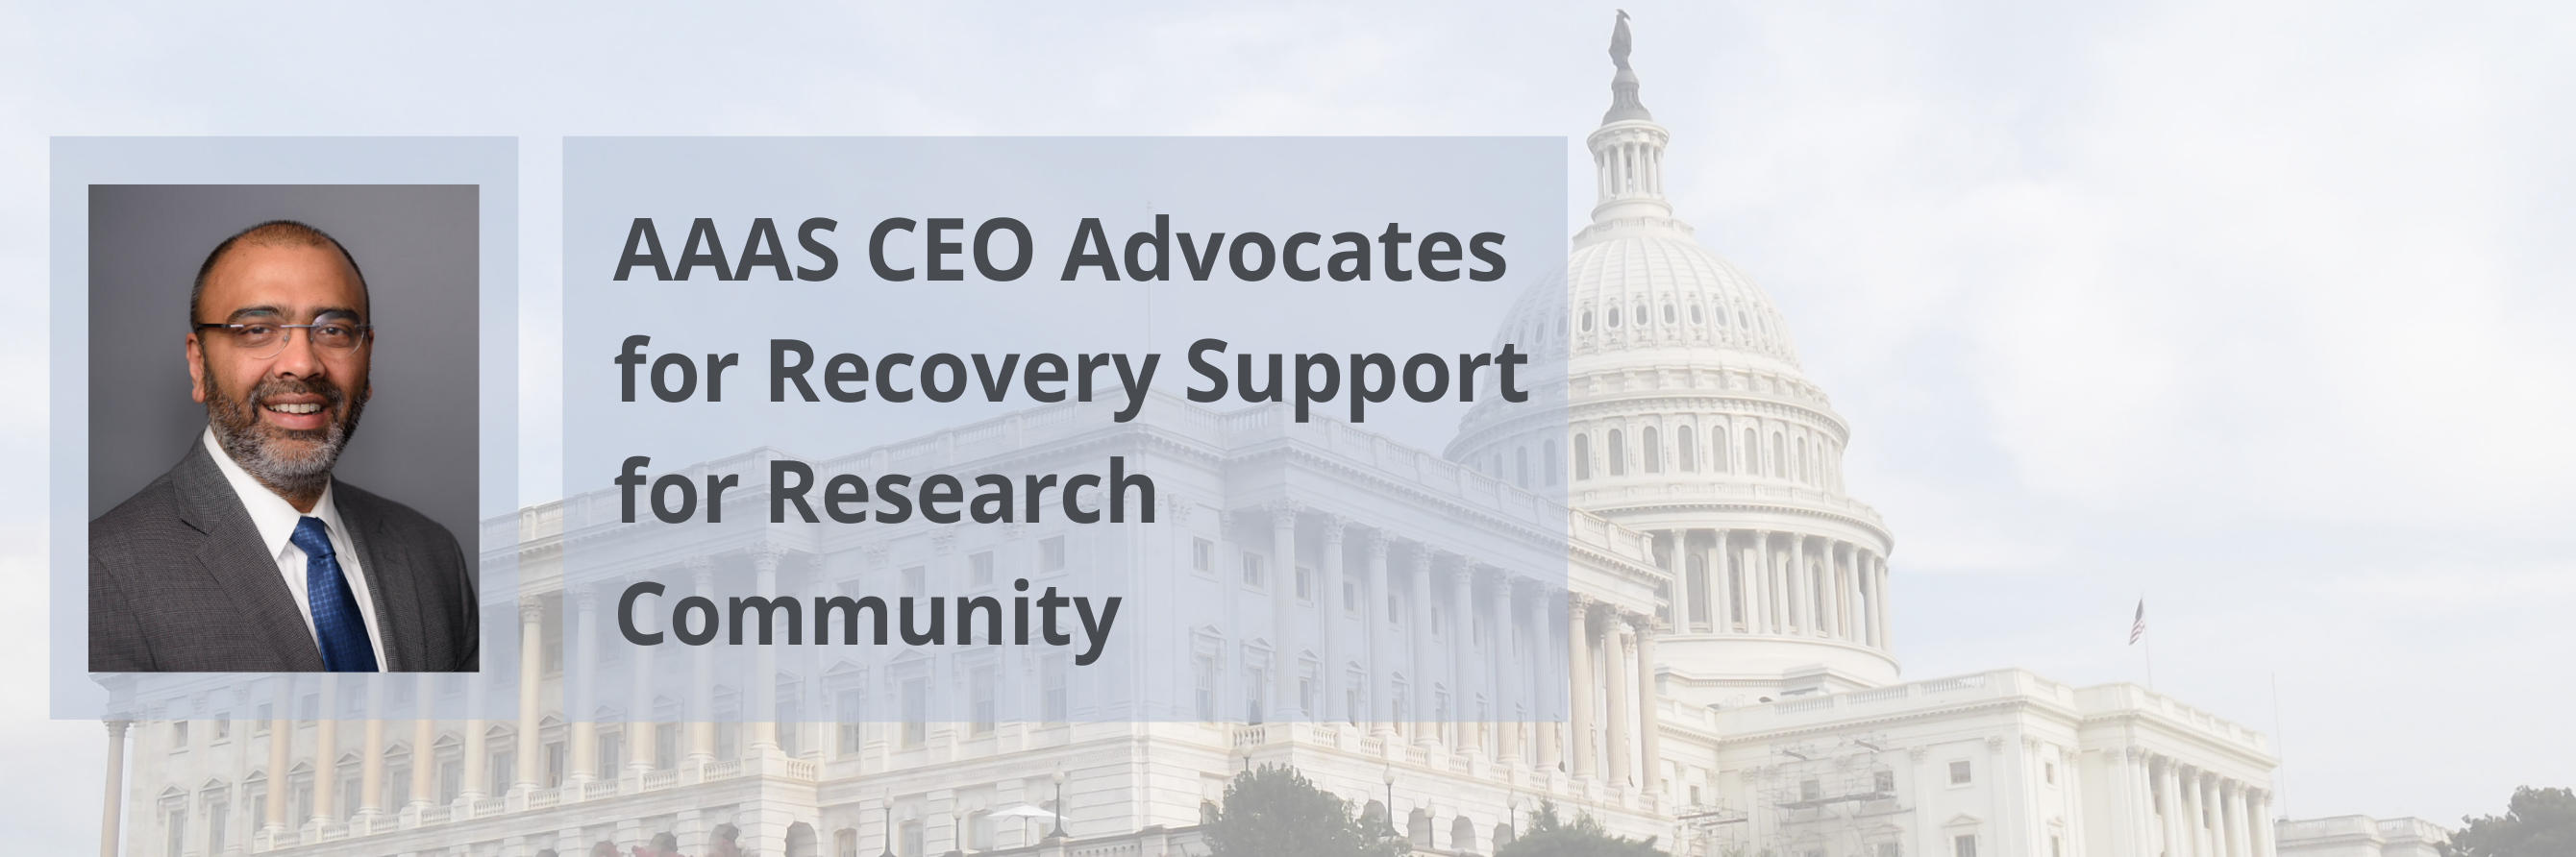 Headshot of Sudip Parikh, Background: Capitol building, Text: AAAS CEO Advocates for Recovery Support for Research Community